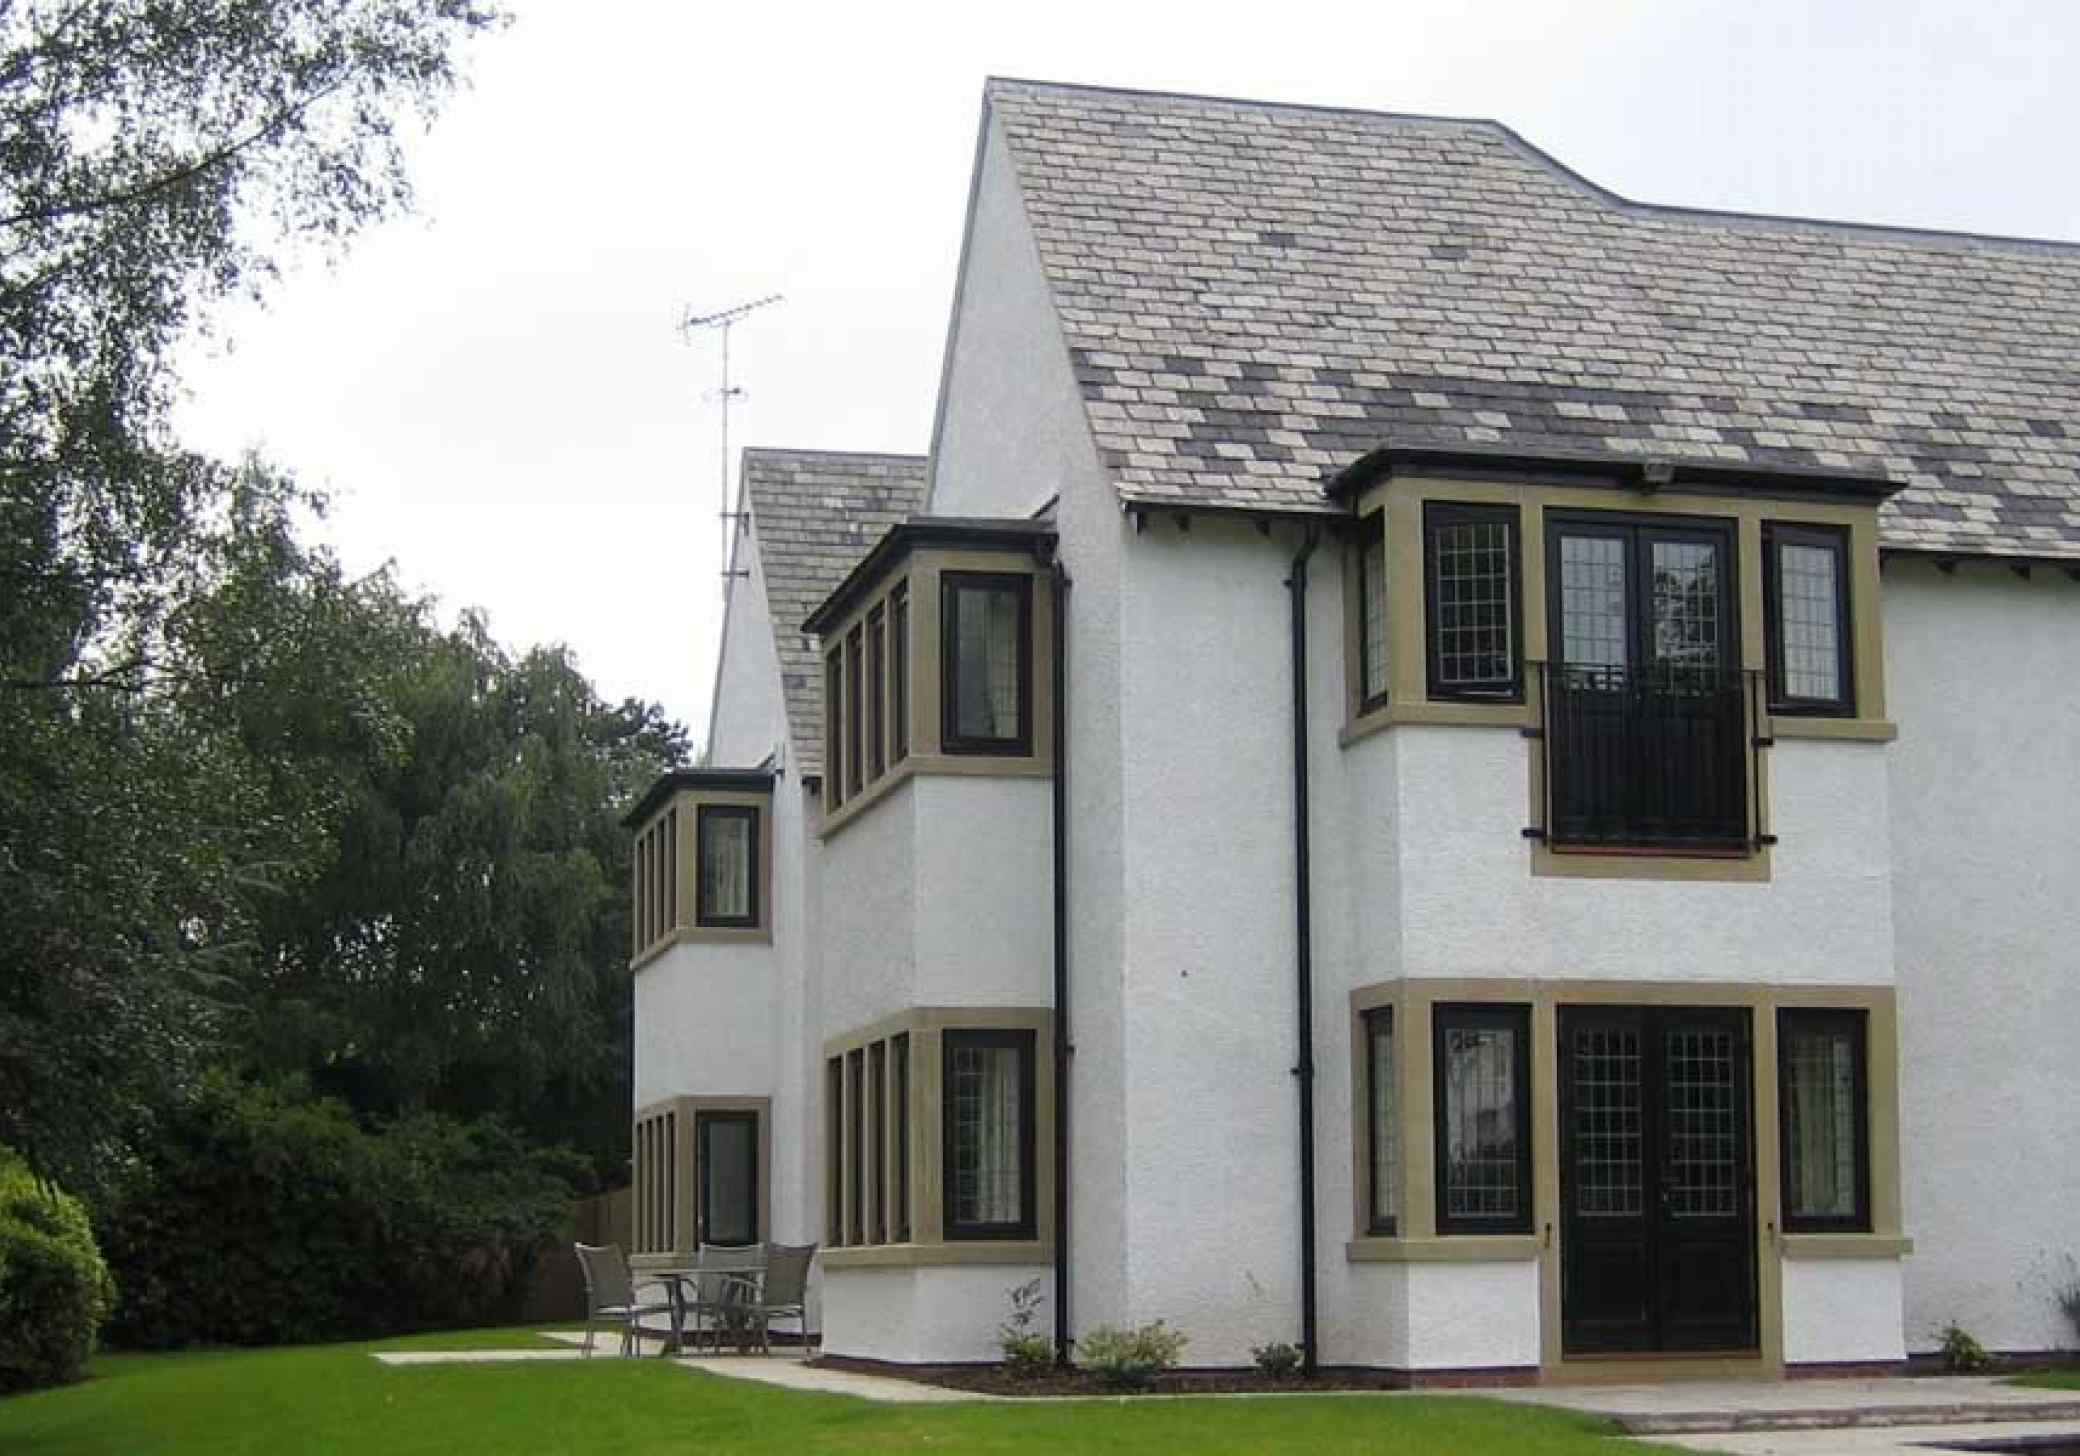 Replacement Dwelling - Curzon Park, Chester Cheshire